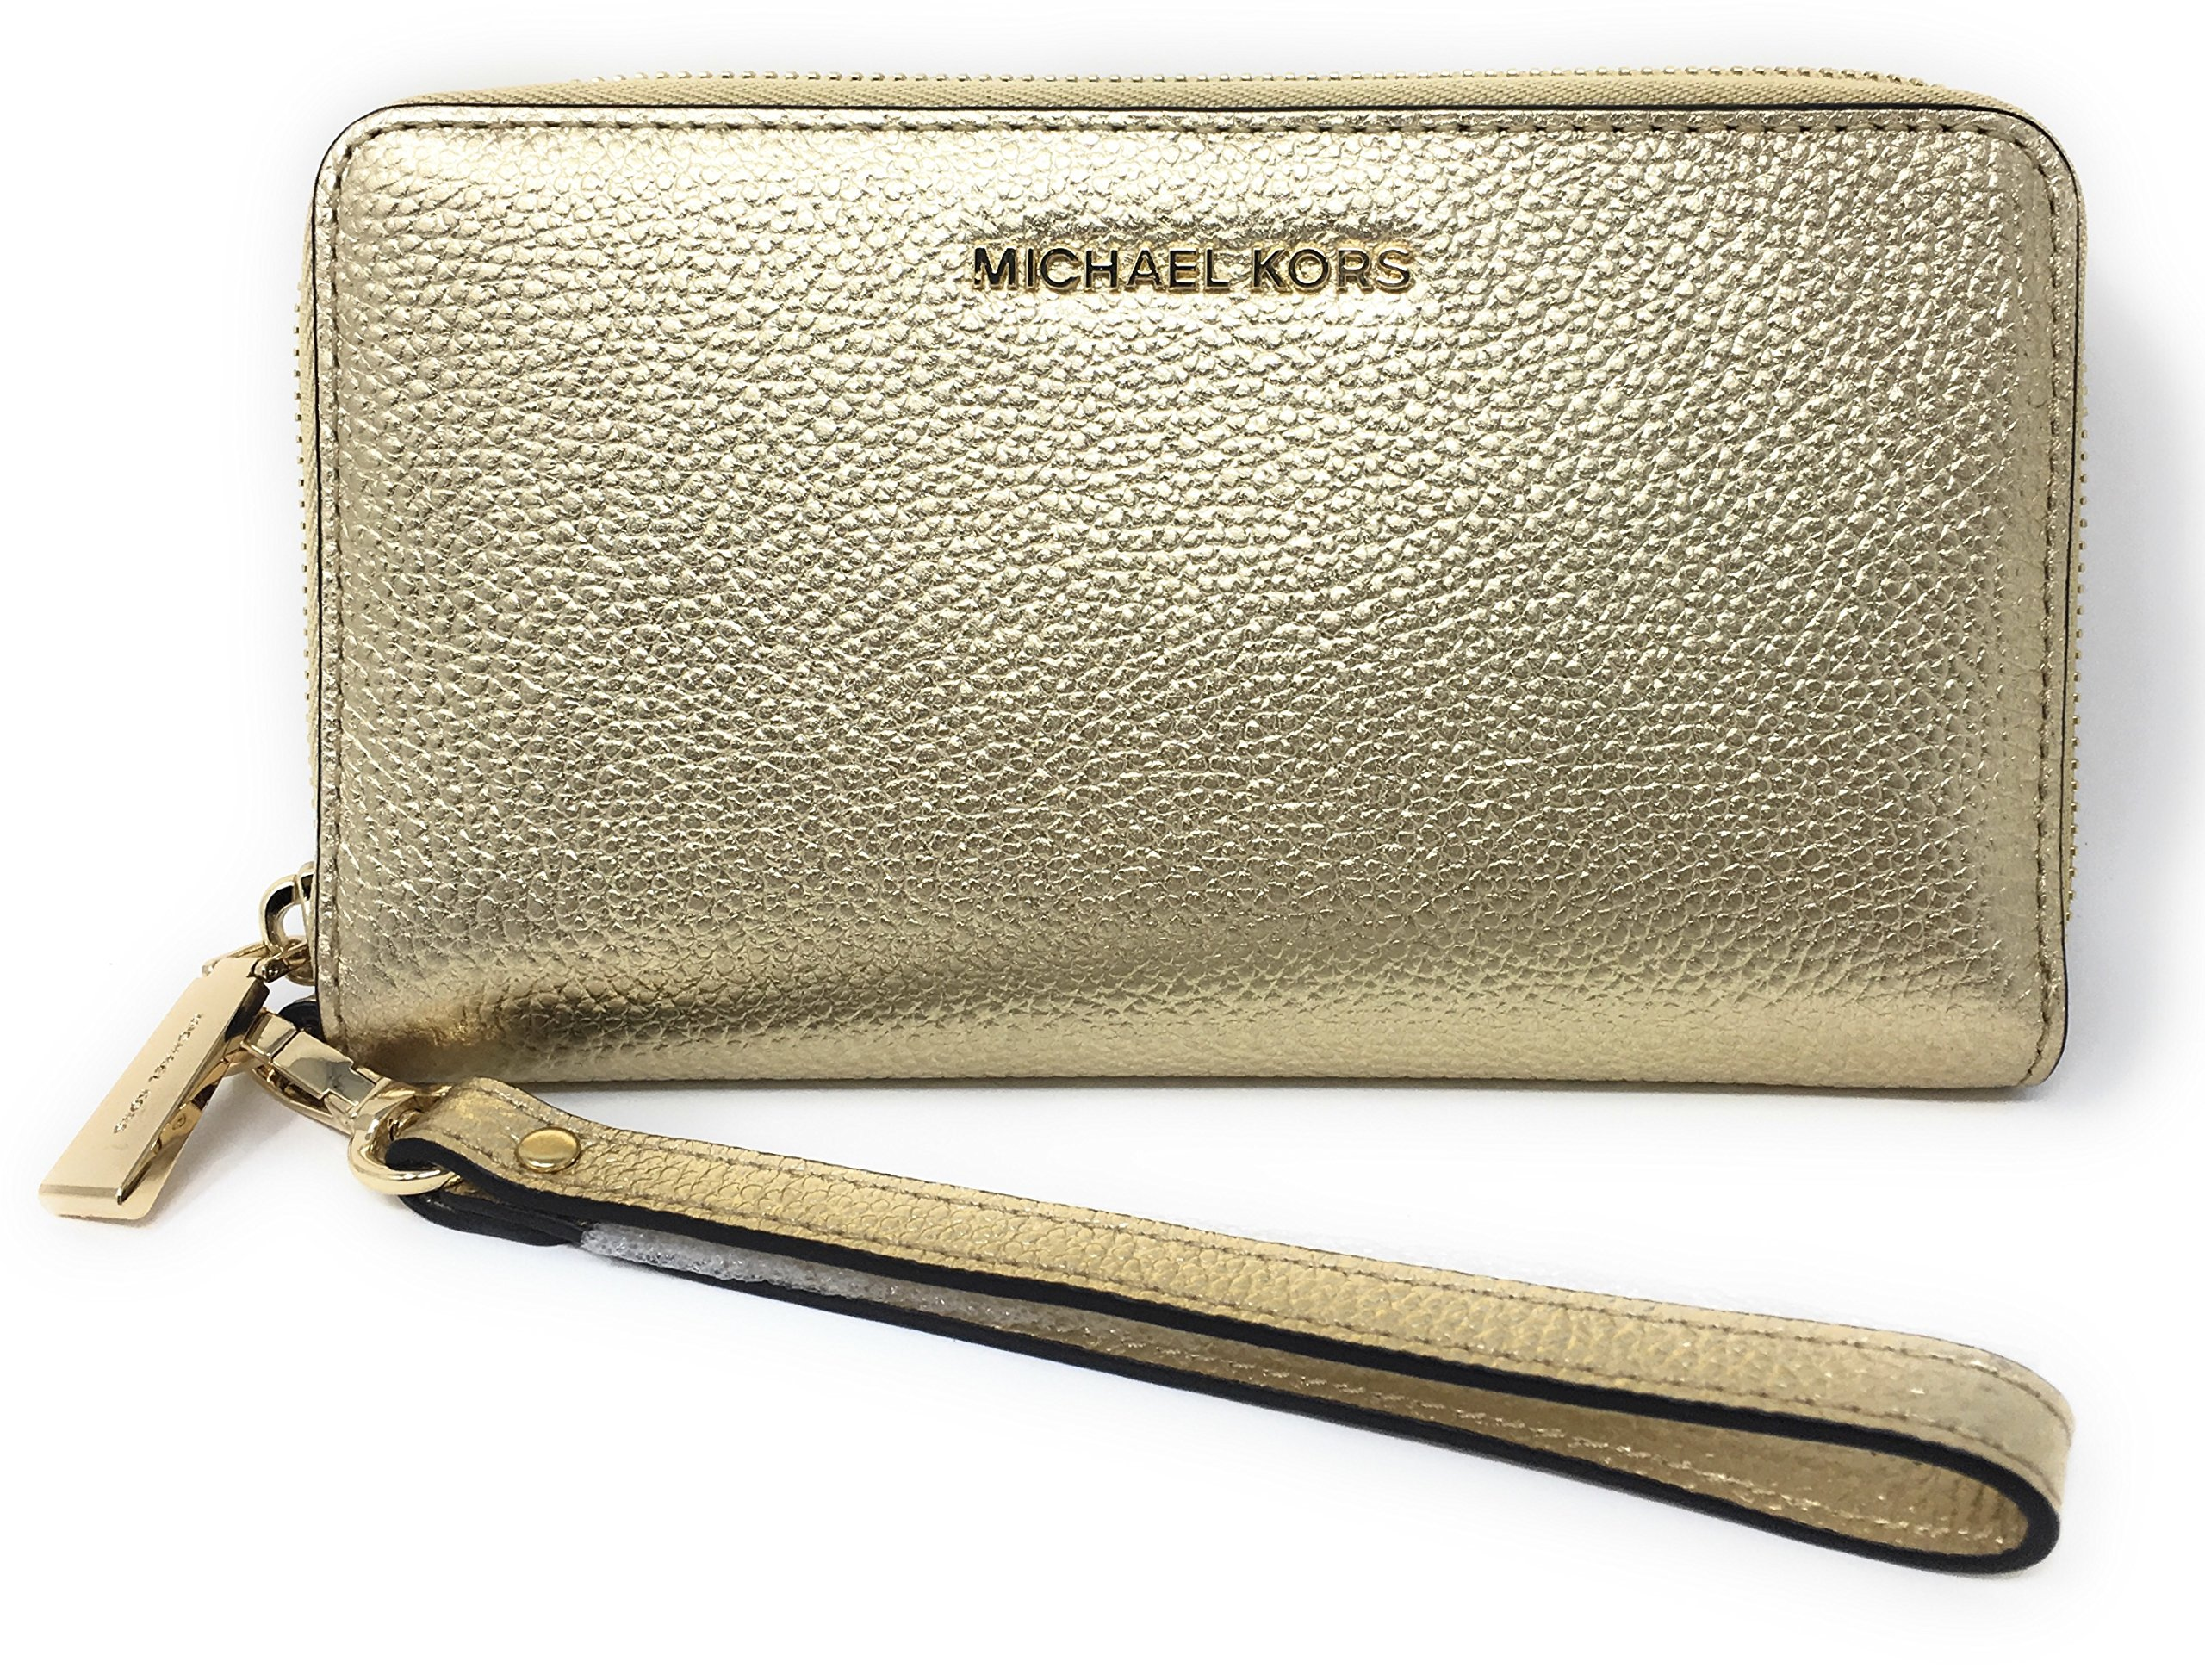 Michael Kors Large Flat Multifunction Phone Case Leather Wristlet (Pale Gold)